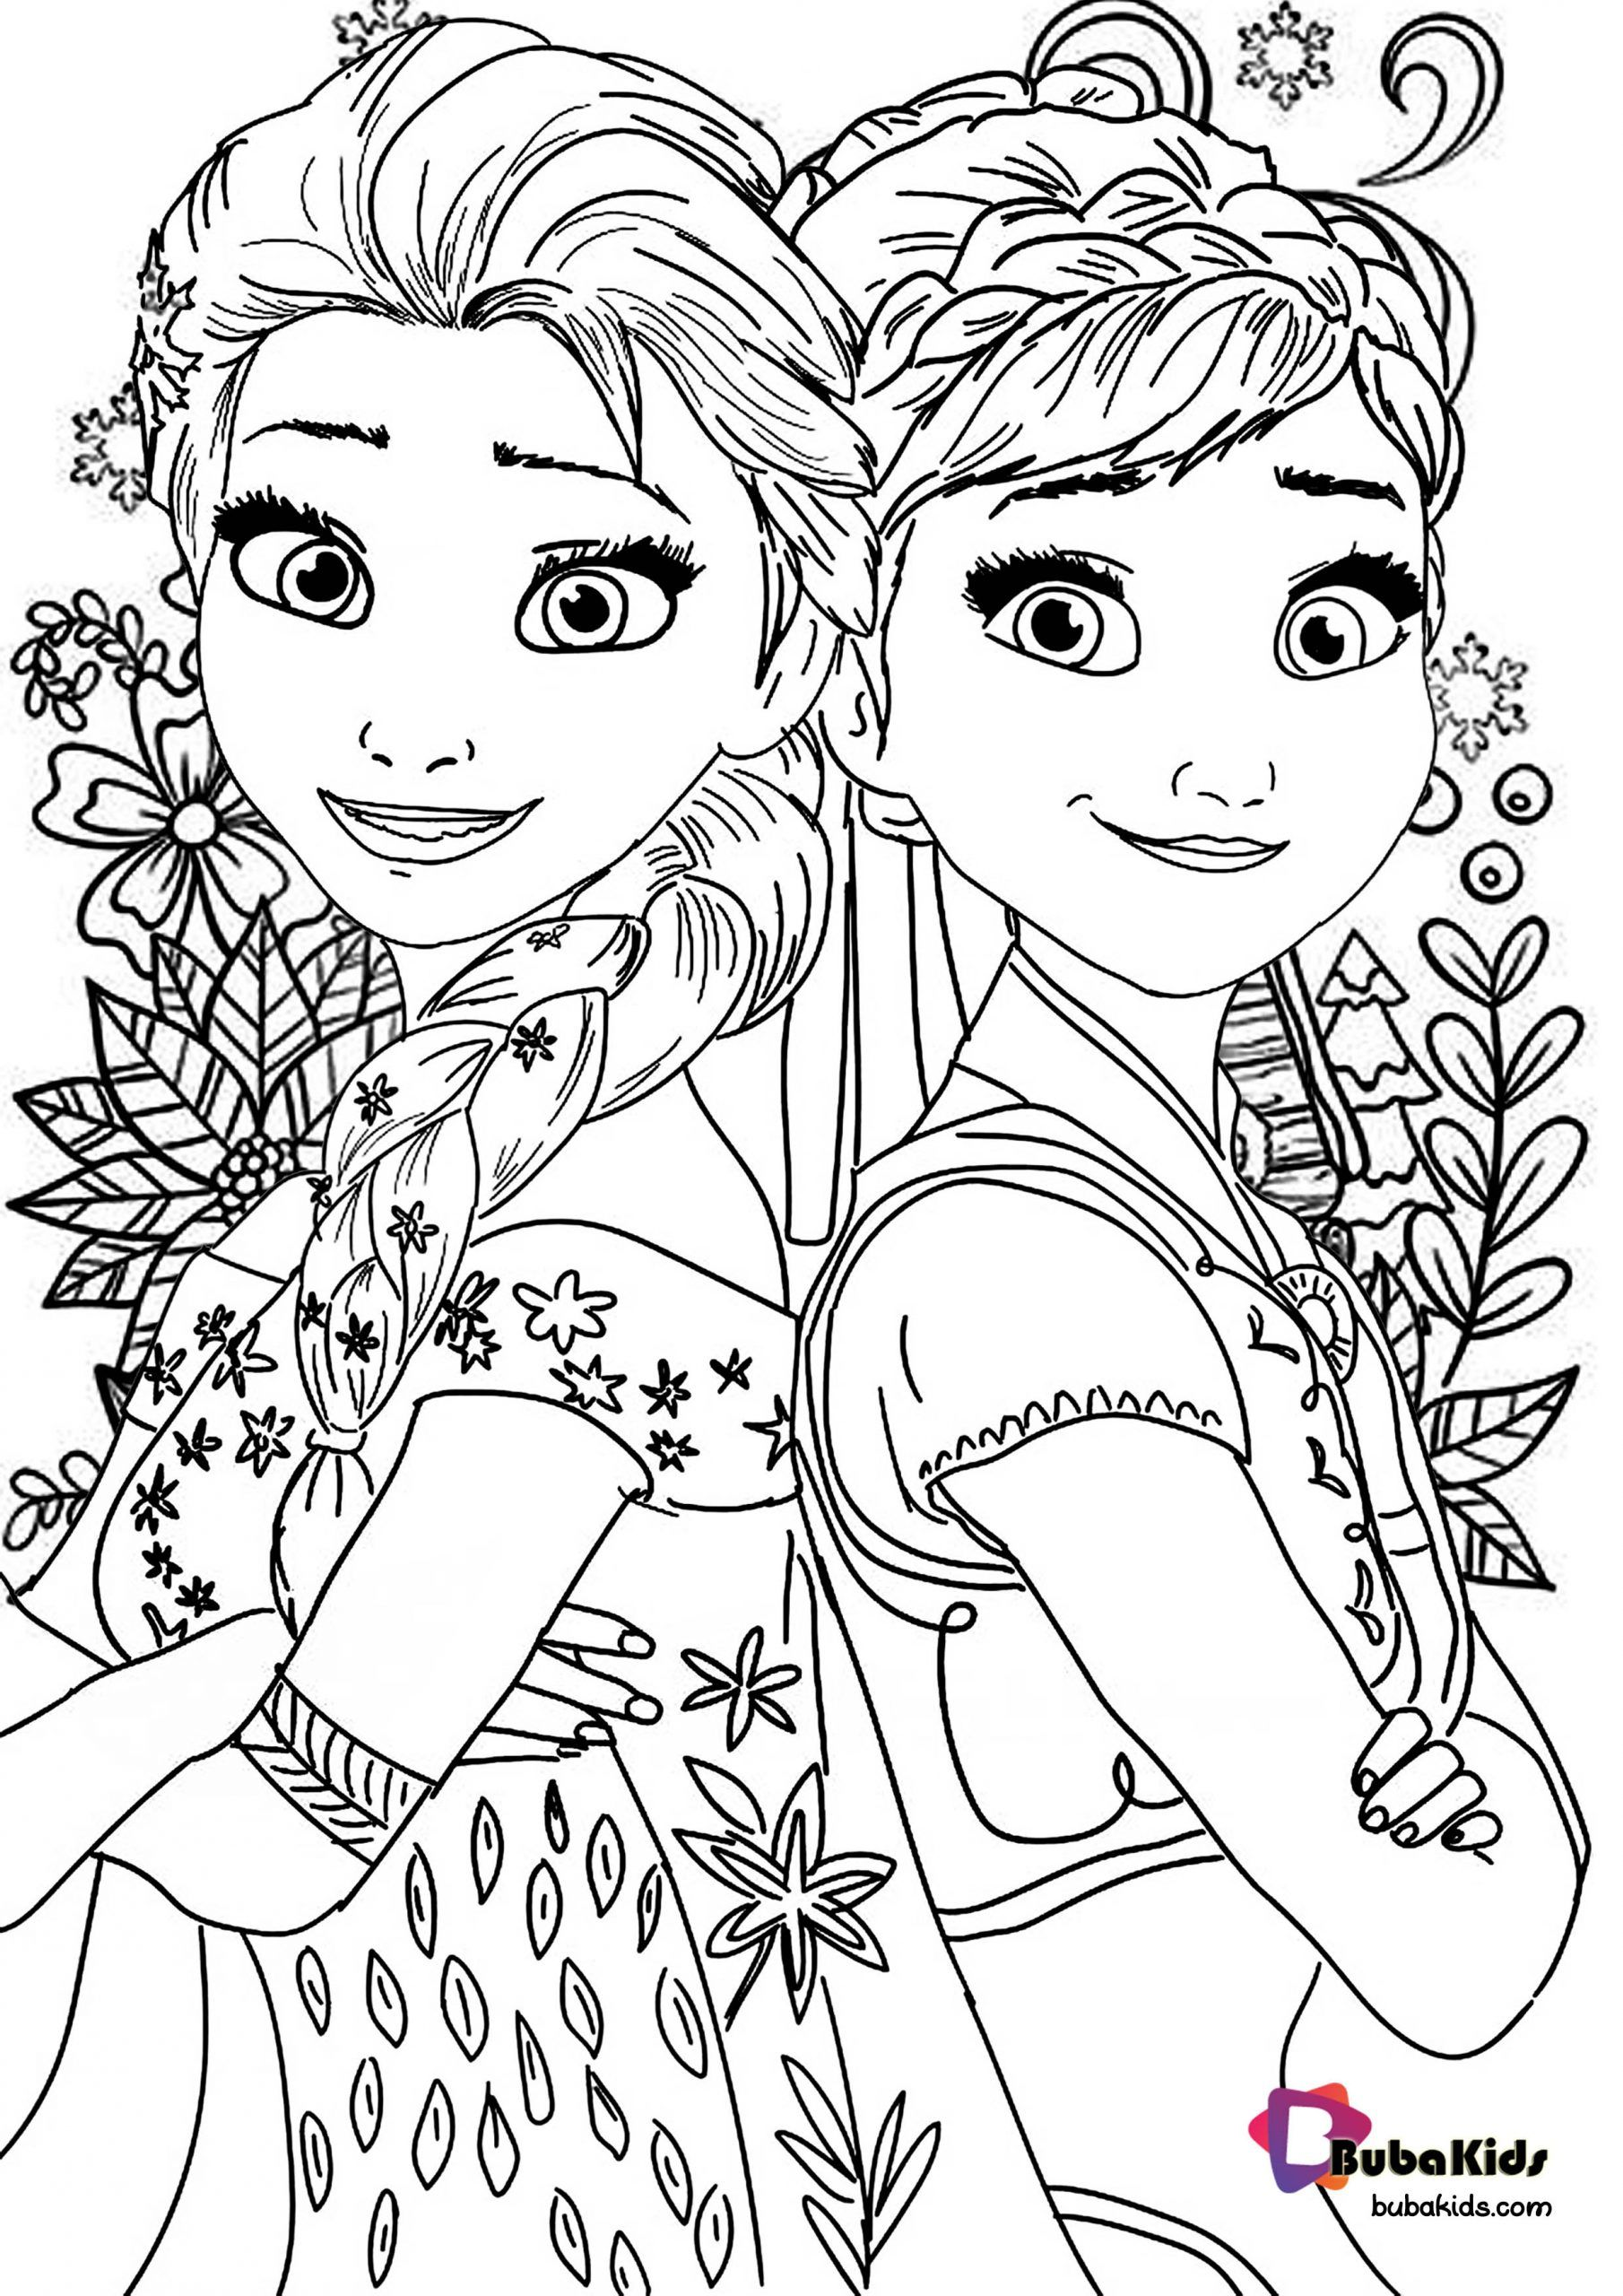 Frozen 2 Coloring Page For Kids Collection Of Cartoon Coloring